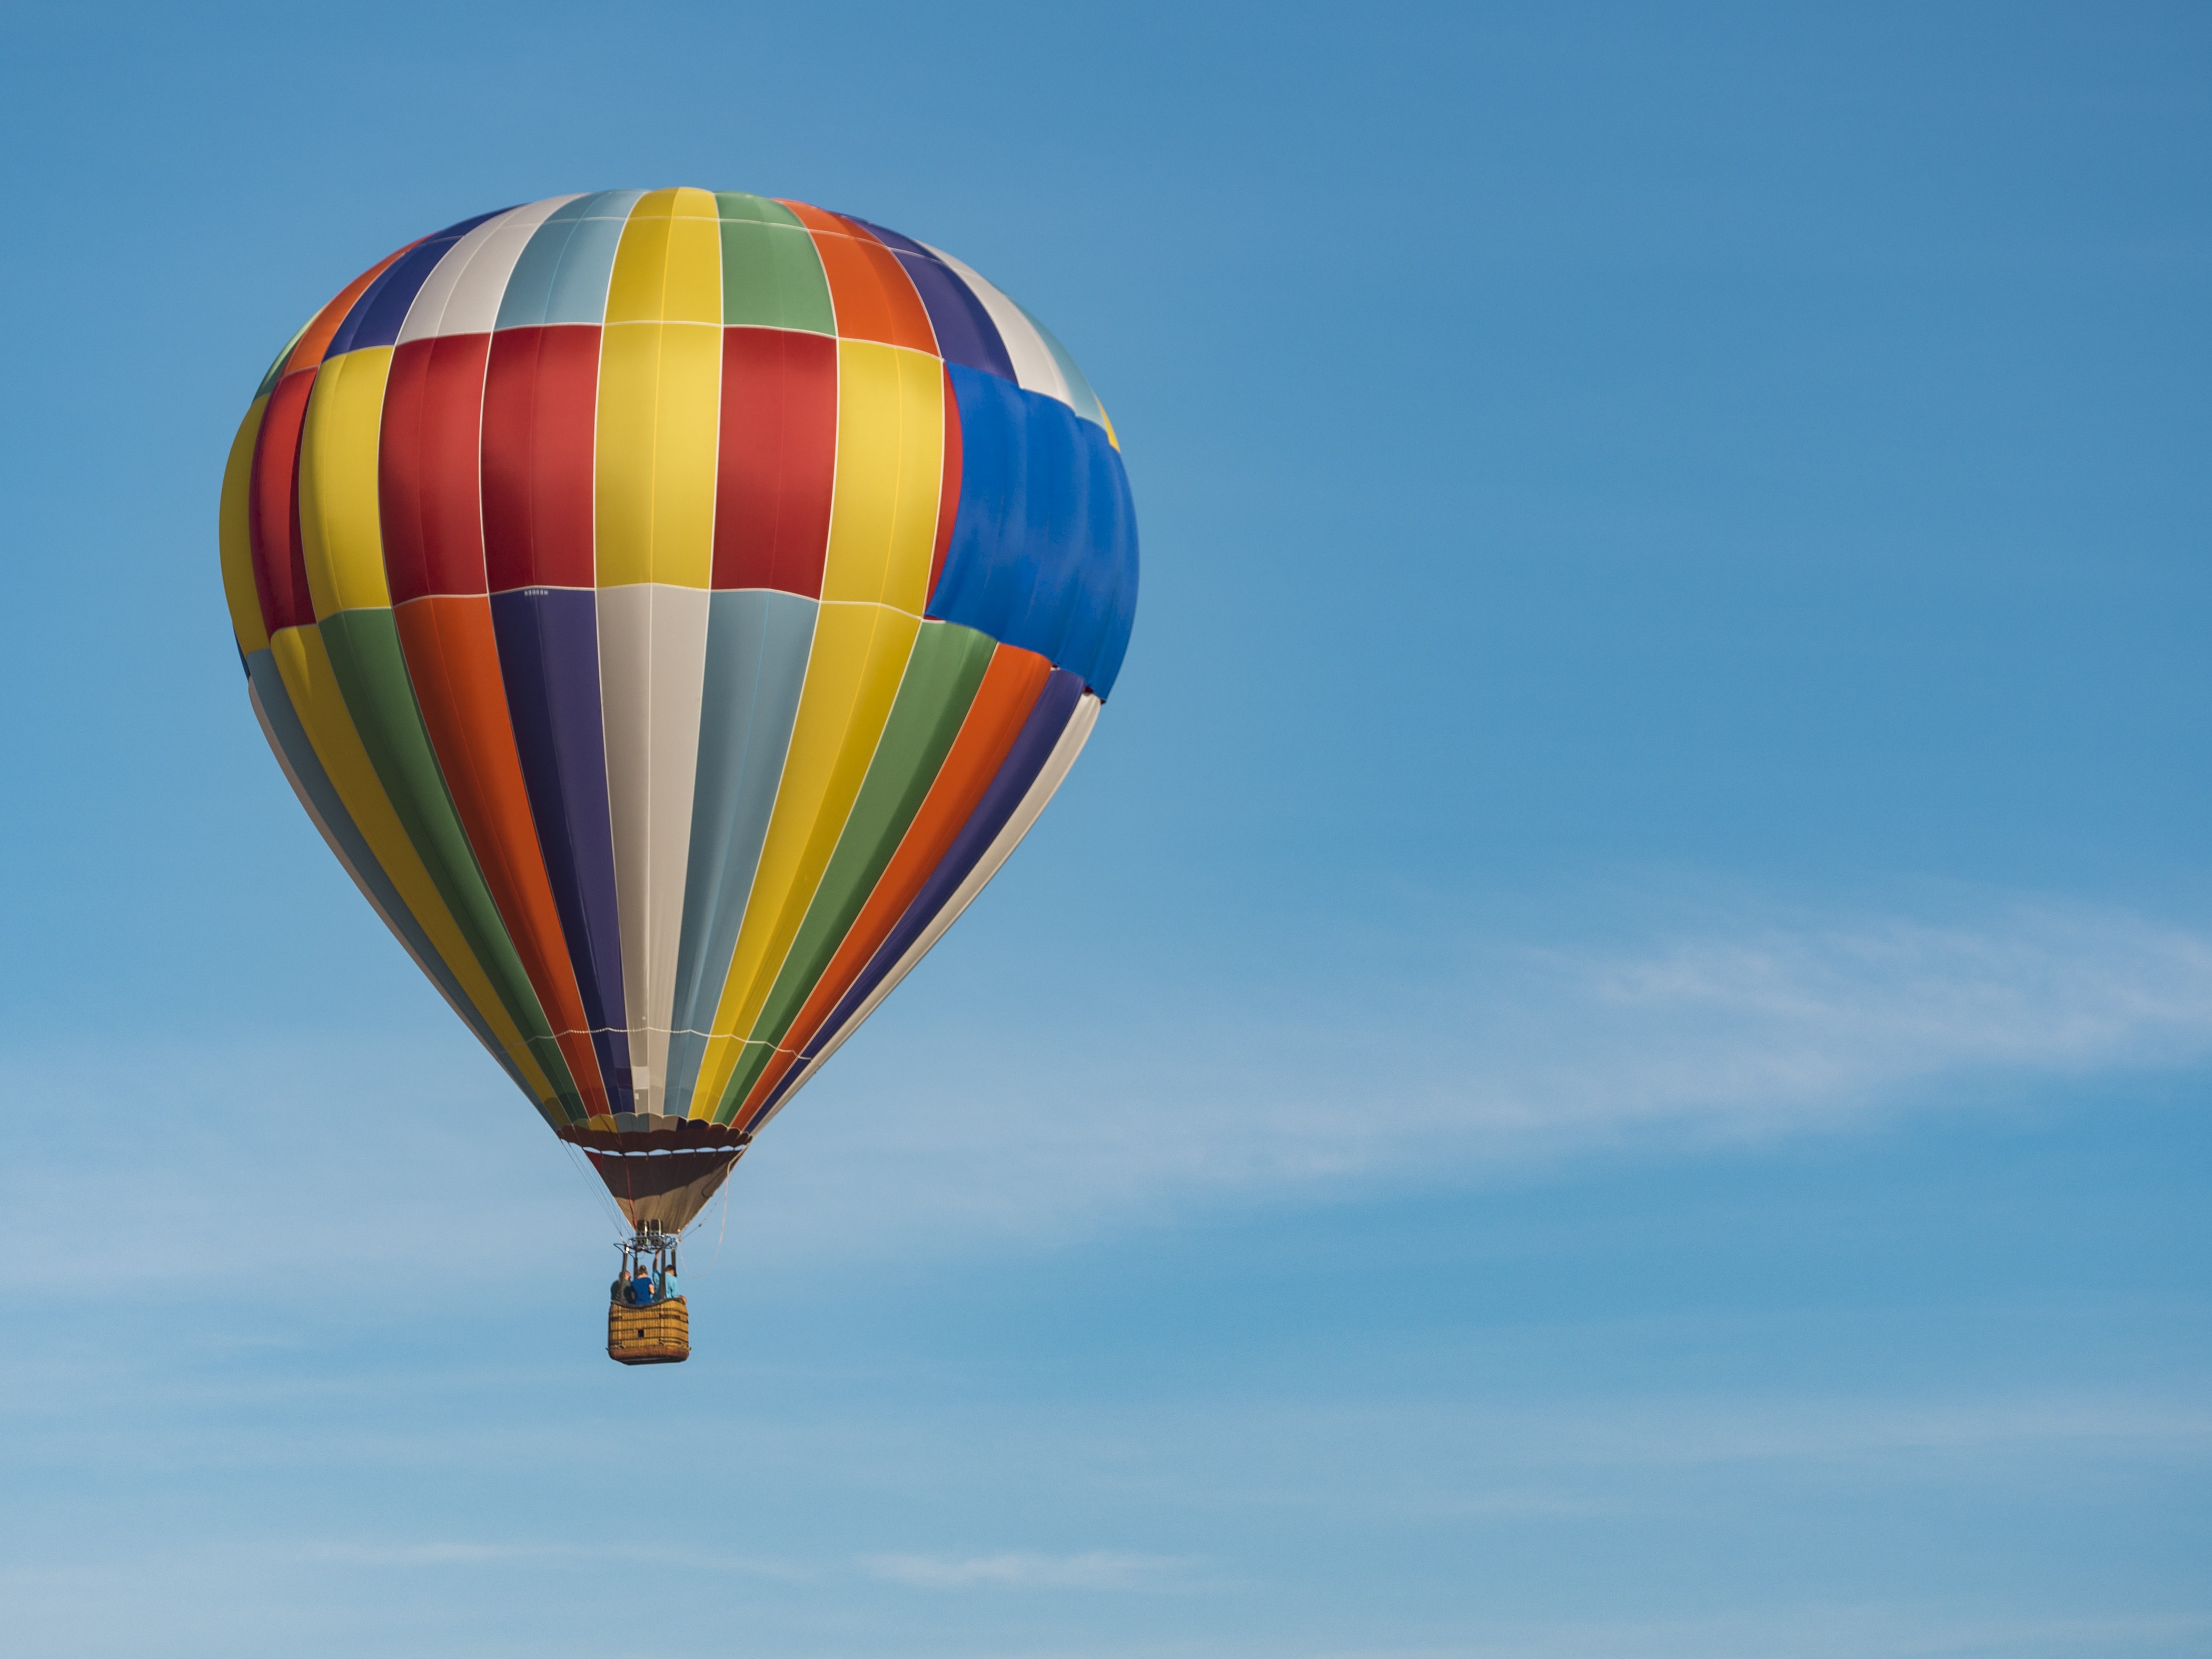 panning photography of flying blue, yellow, and red hot air balloon